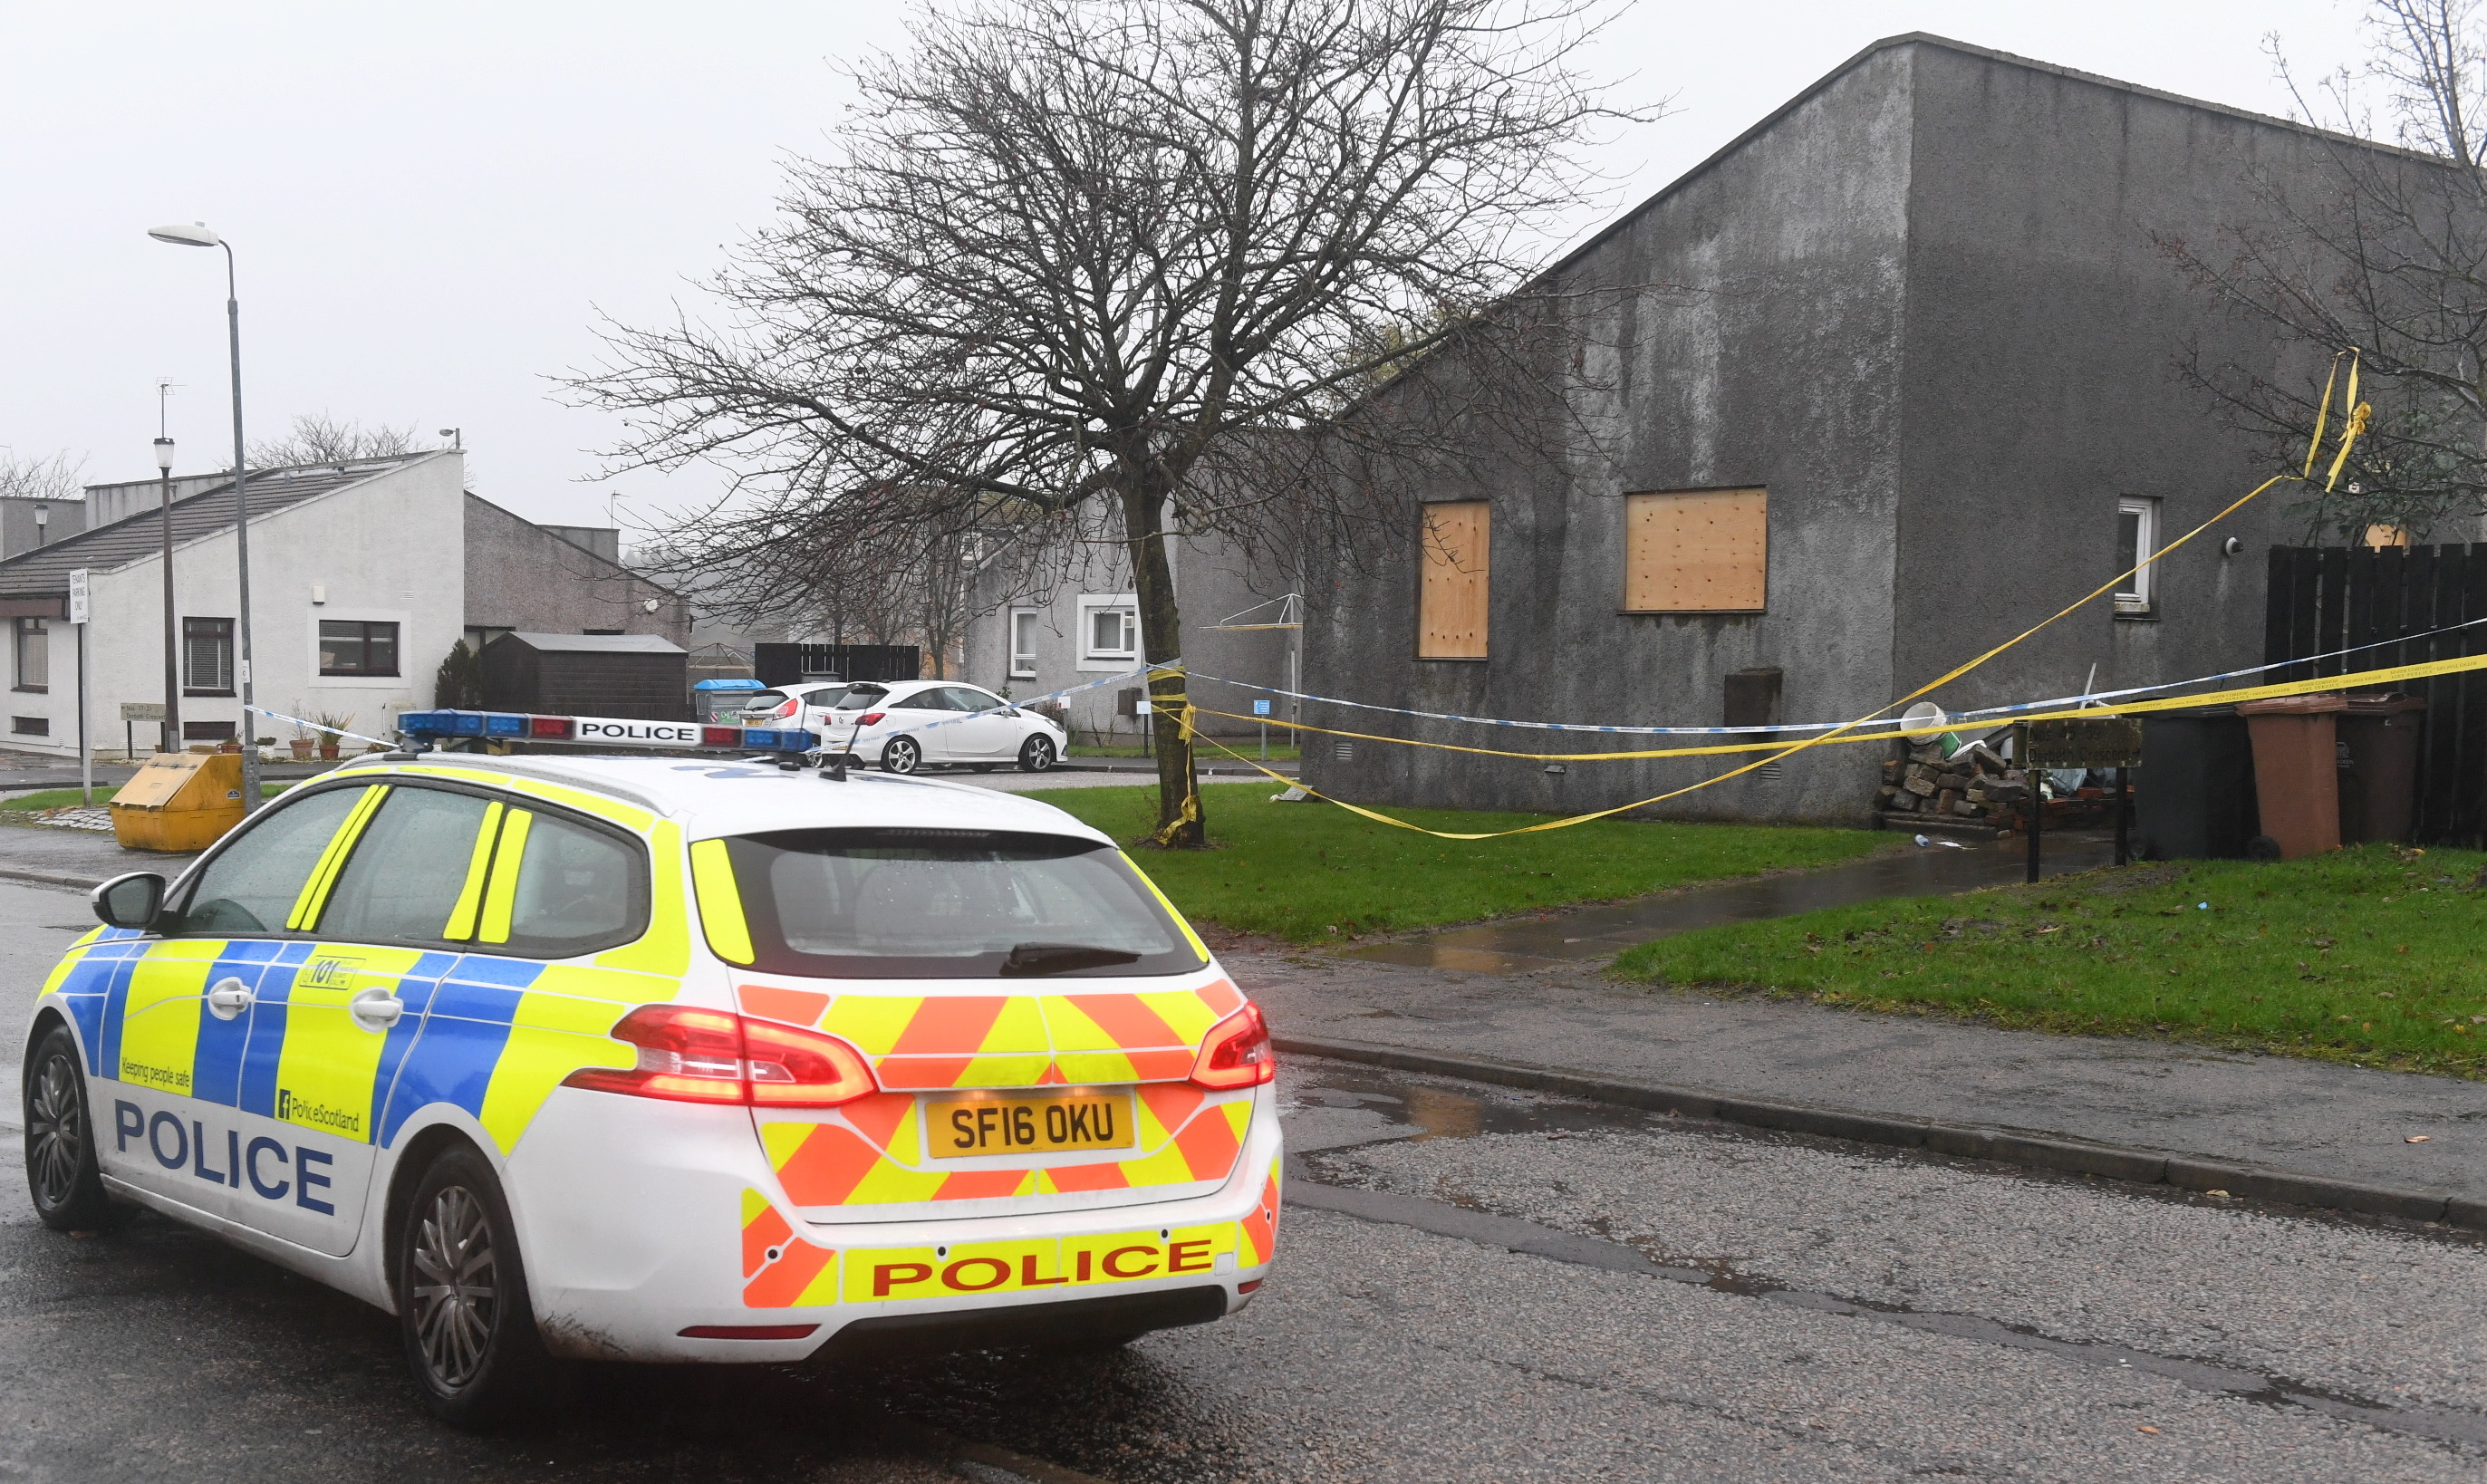 Picture from the aftermath of the fire at Derbeth Crescent, Sheddocksley Aberdeen.